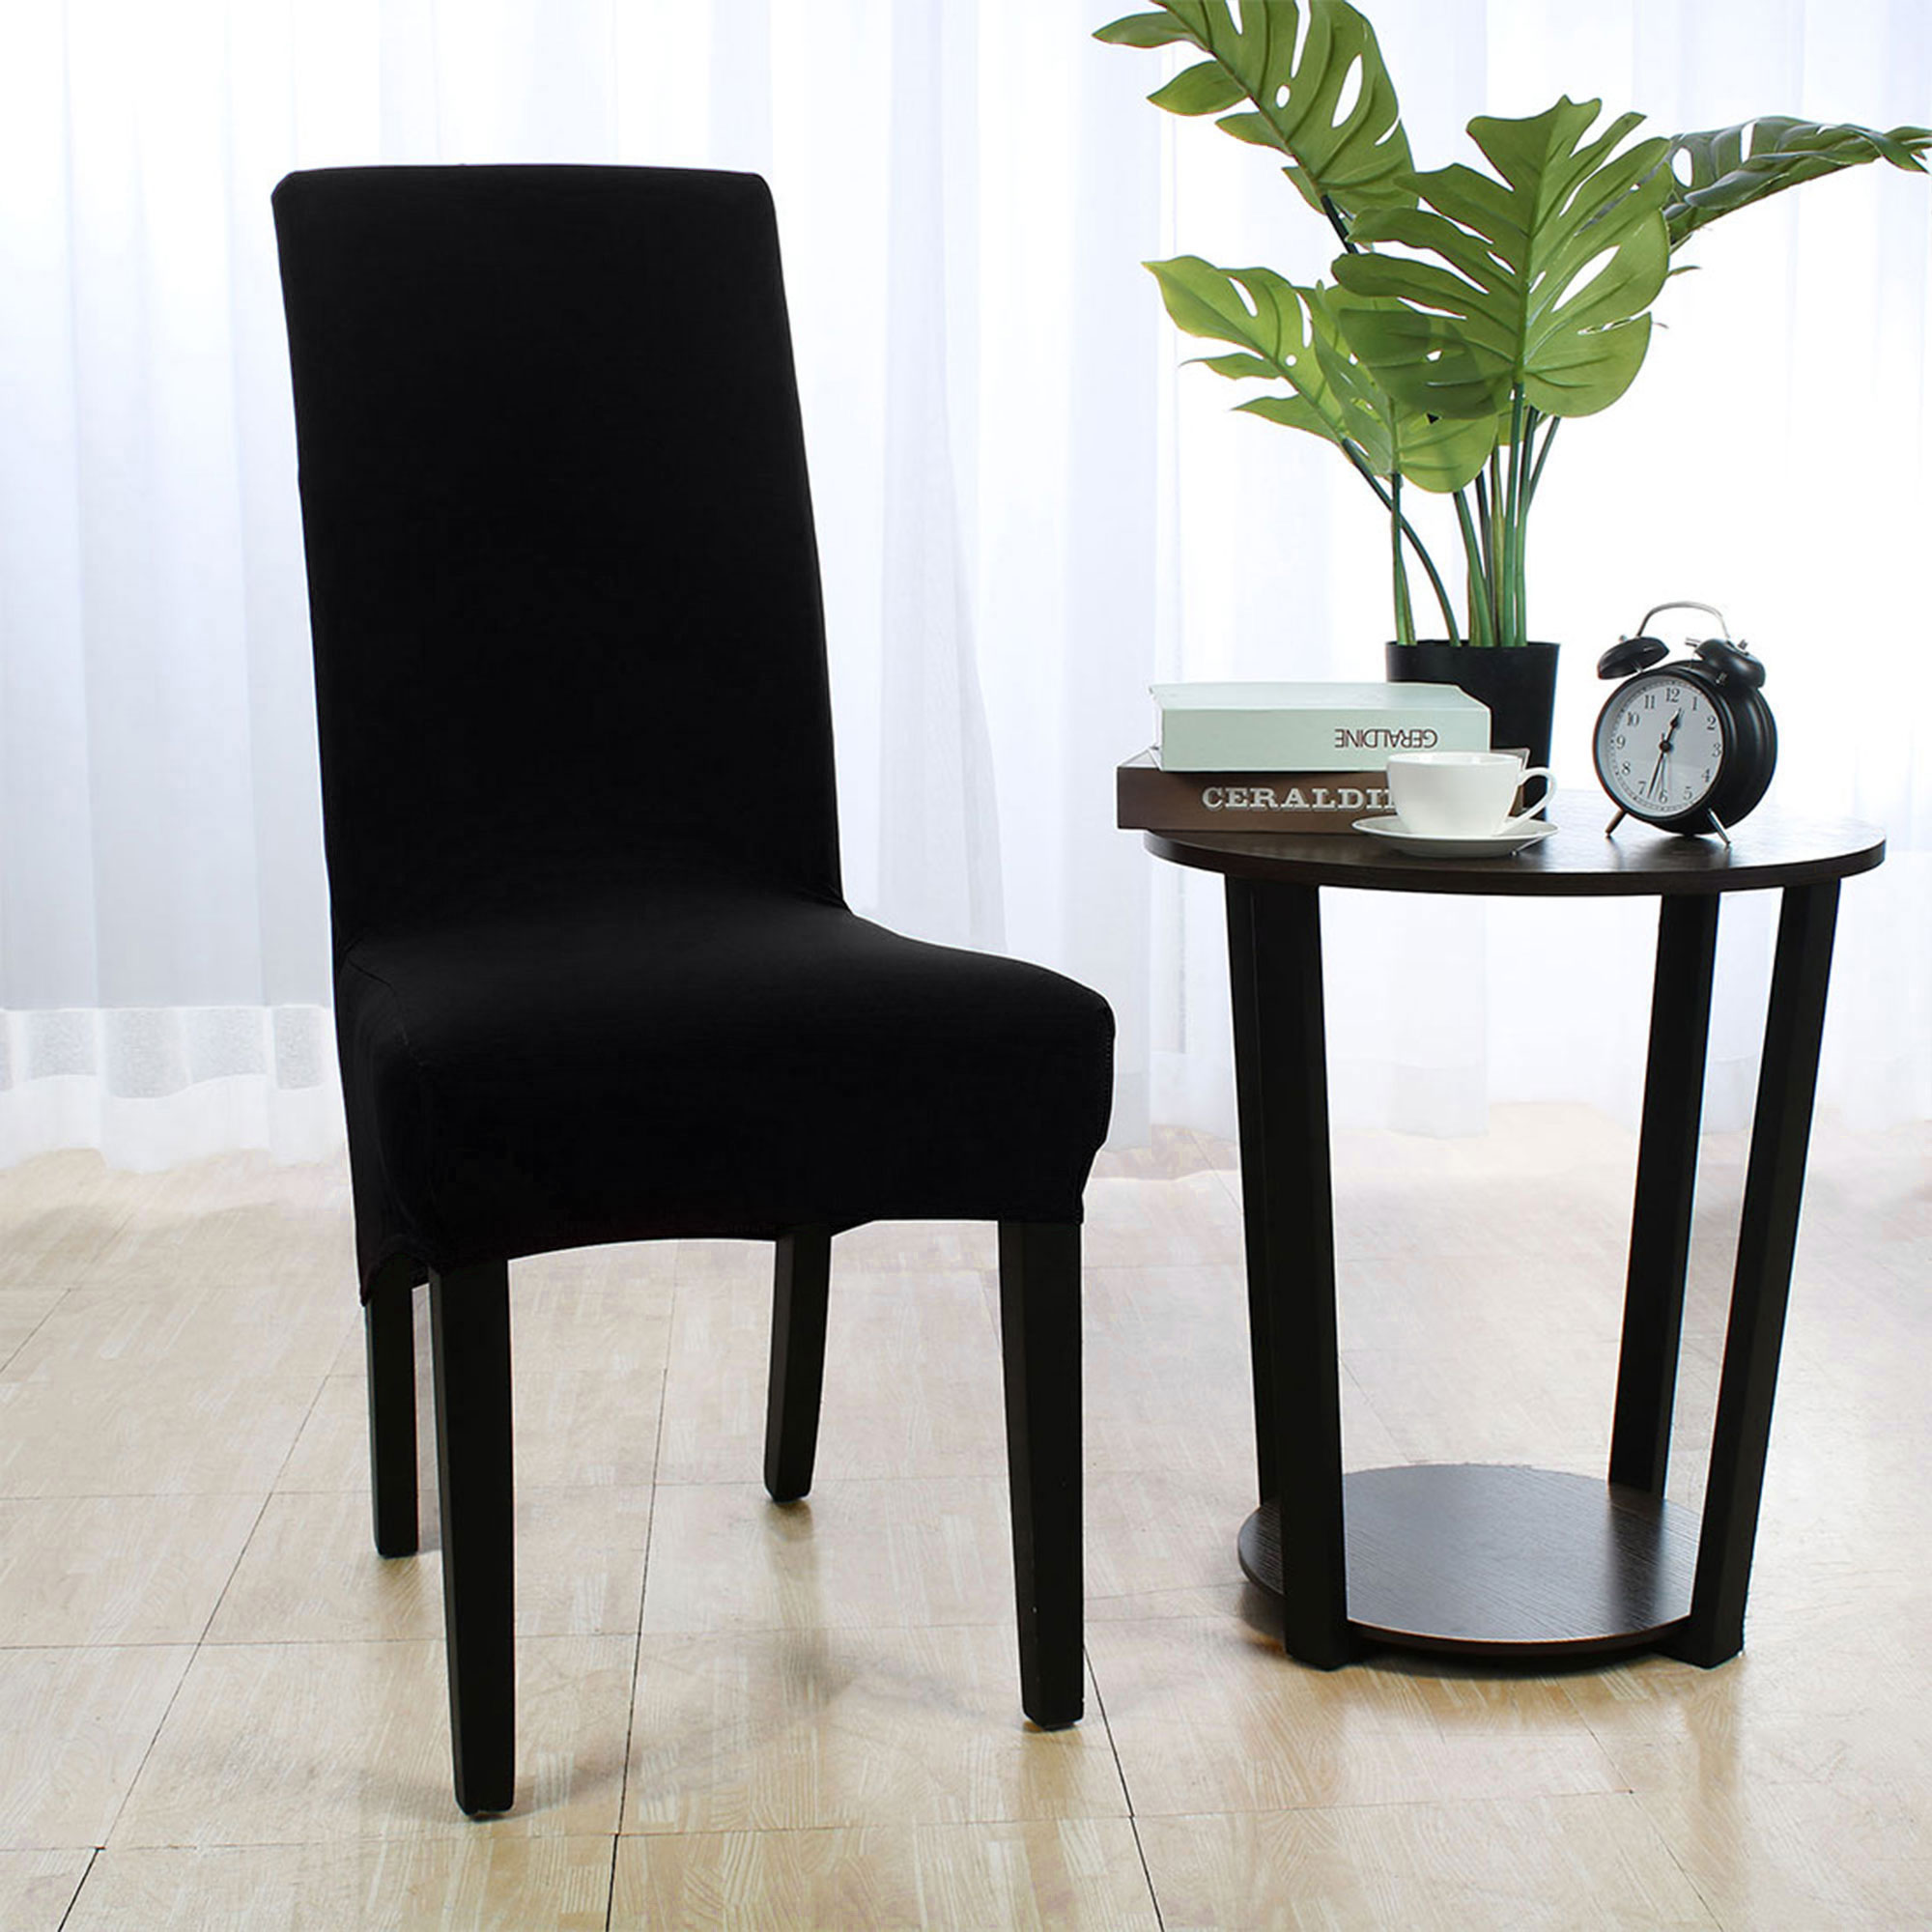 chair covers long back diy cushion with piping soft cover strech spandex dining seat black walmart com